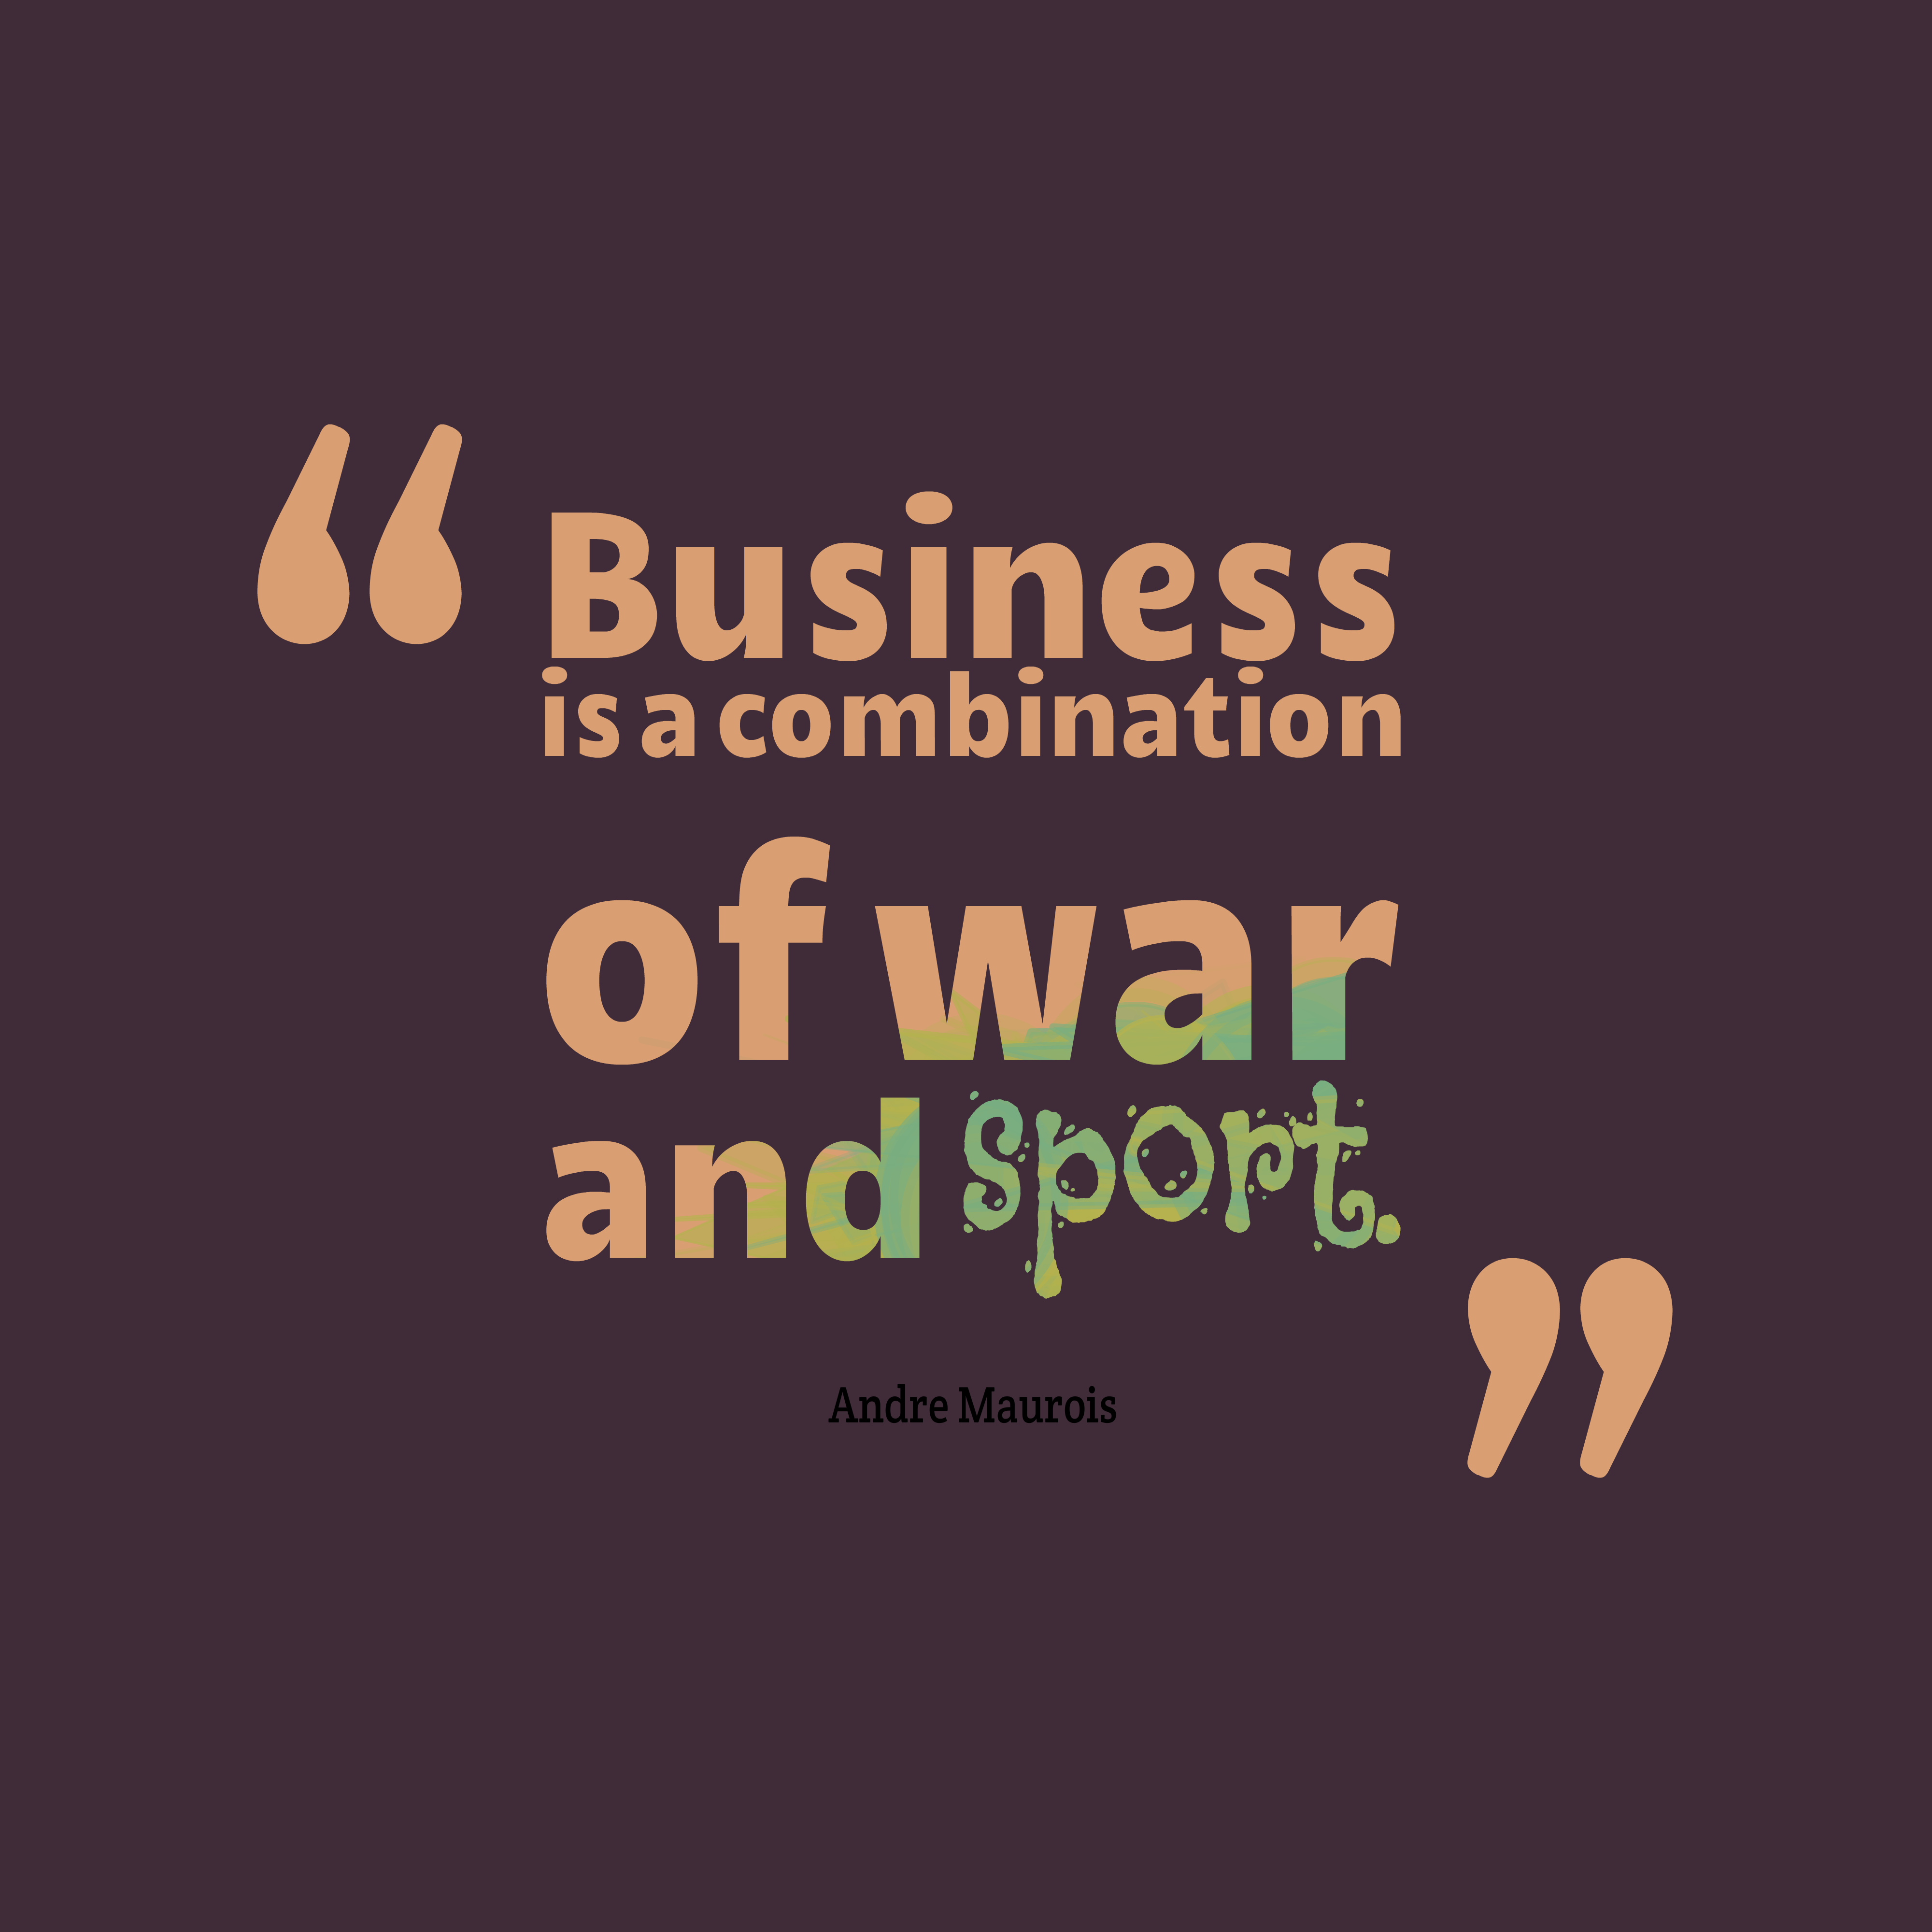 Business-is-a-combination-of__quotes-by-Andre-Maurois-47